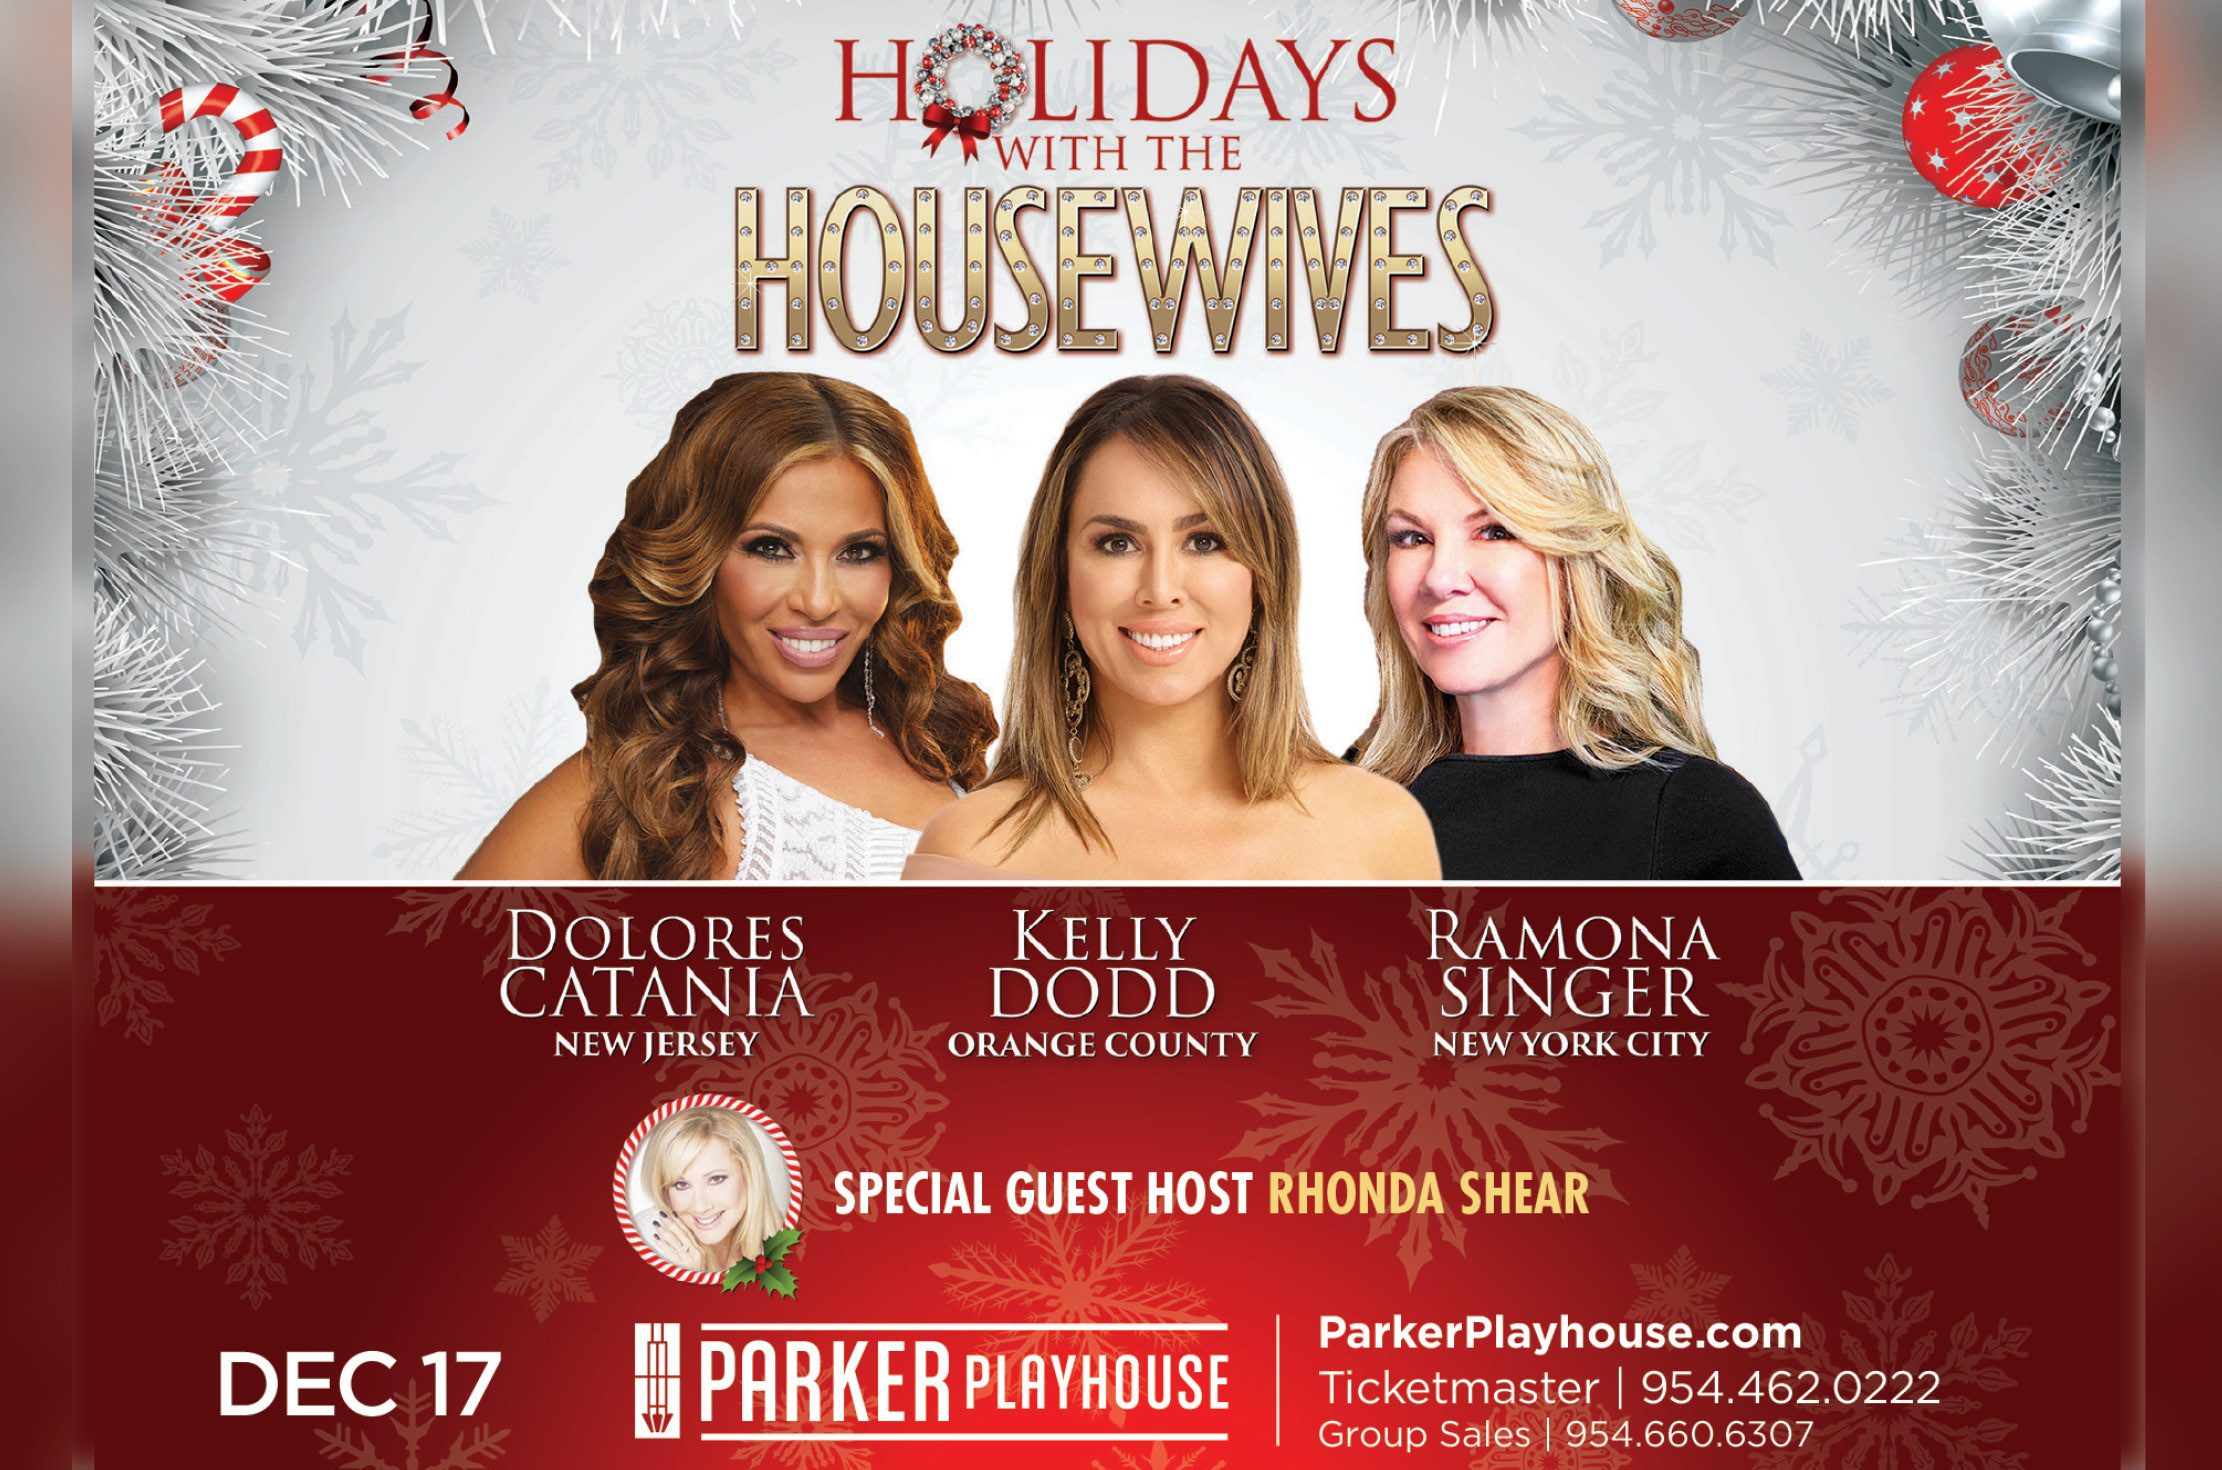 Spend the Holidays with Dolores Catania